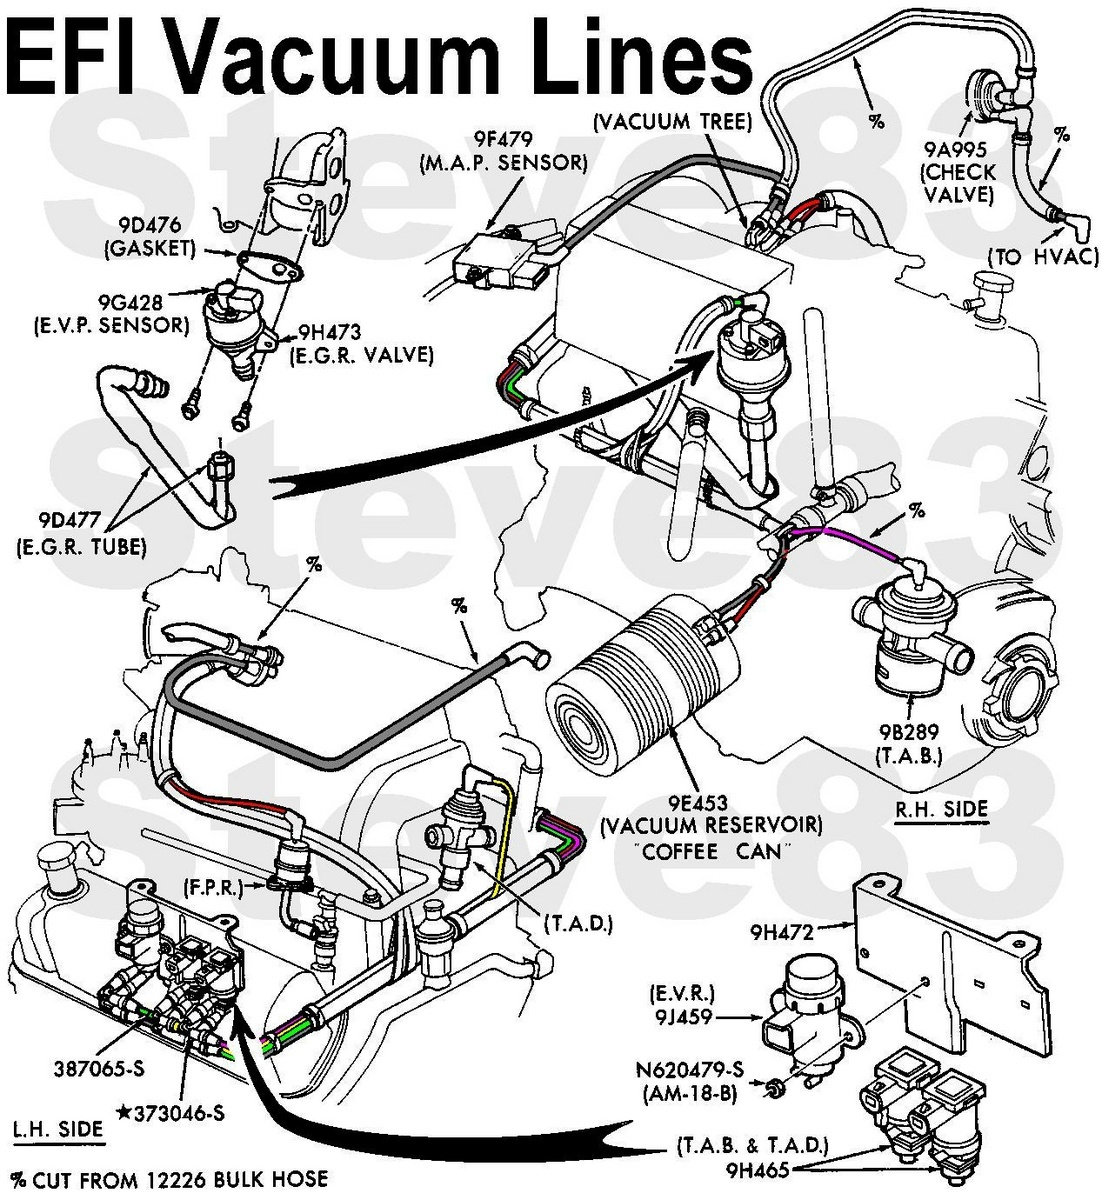 ford f-150 questions - is there a diagram for vacuum hoses on 1990 f150 efi  5.0 litre? - cargurus  cargurus